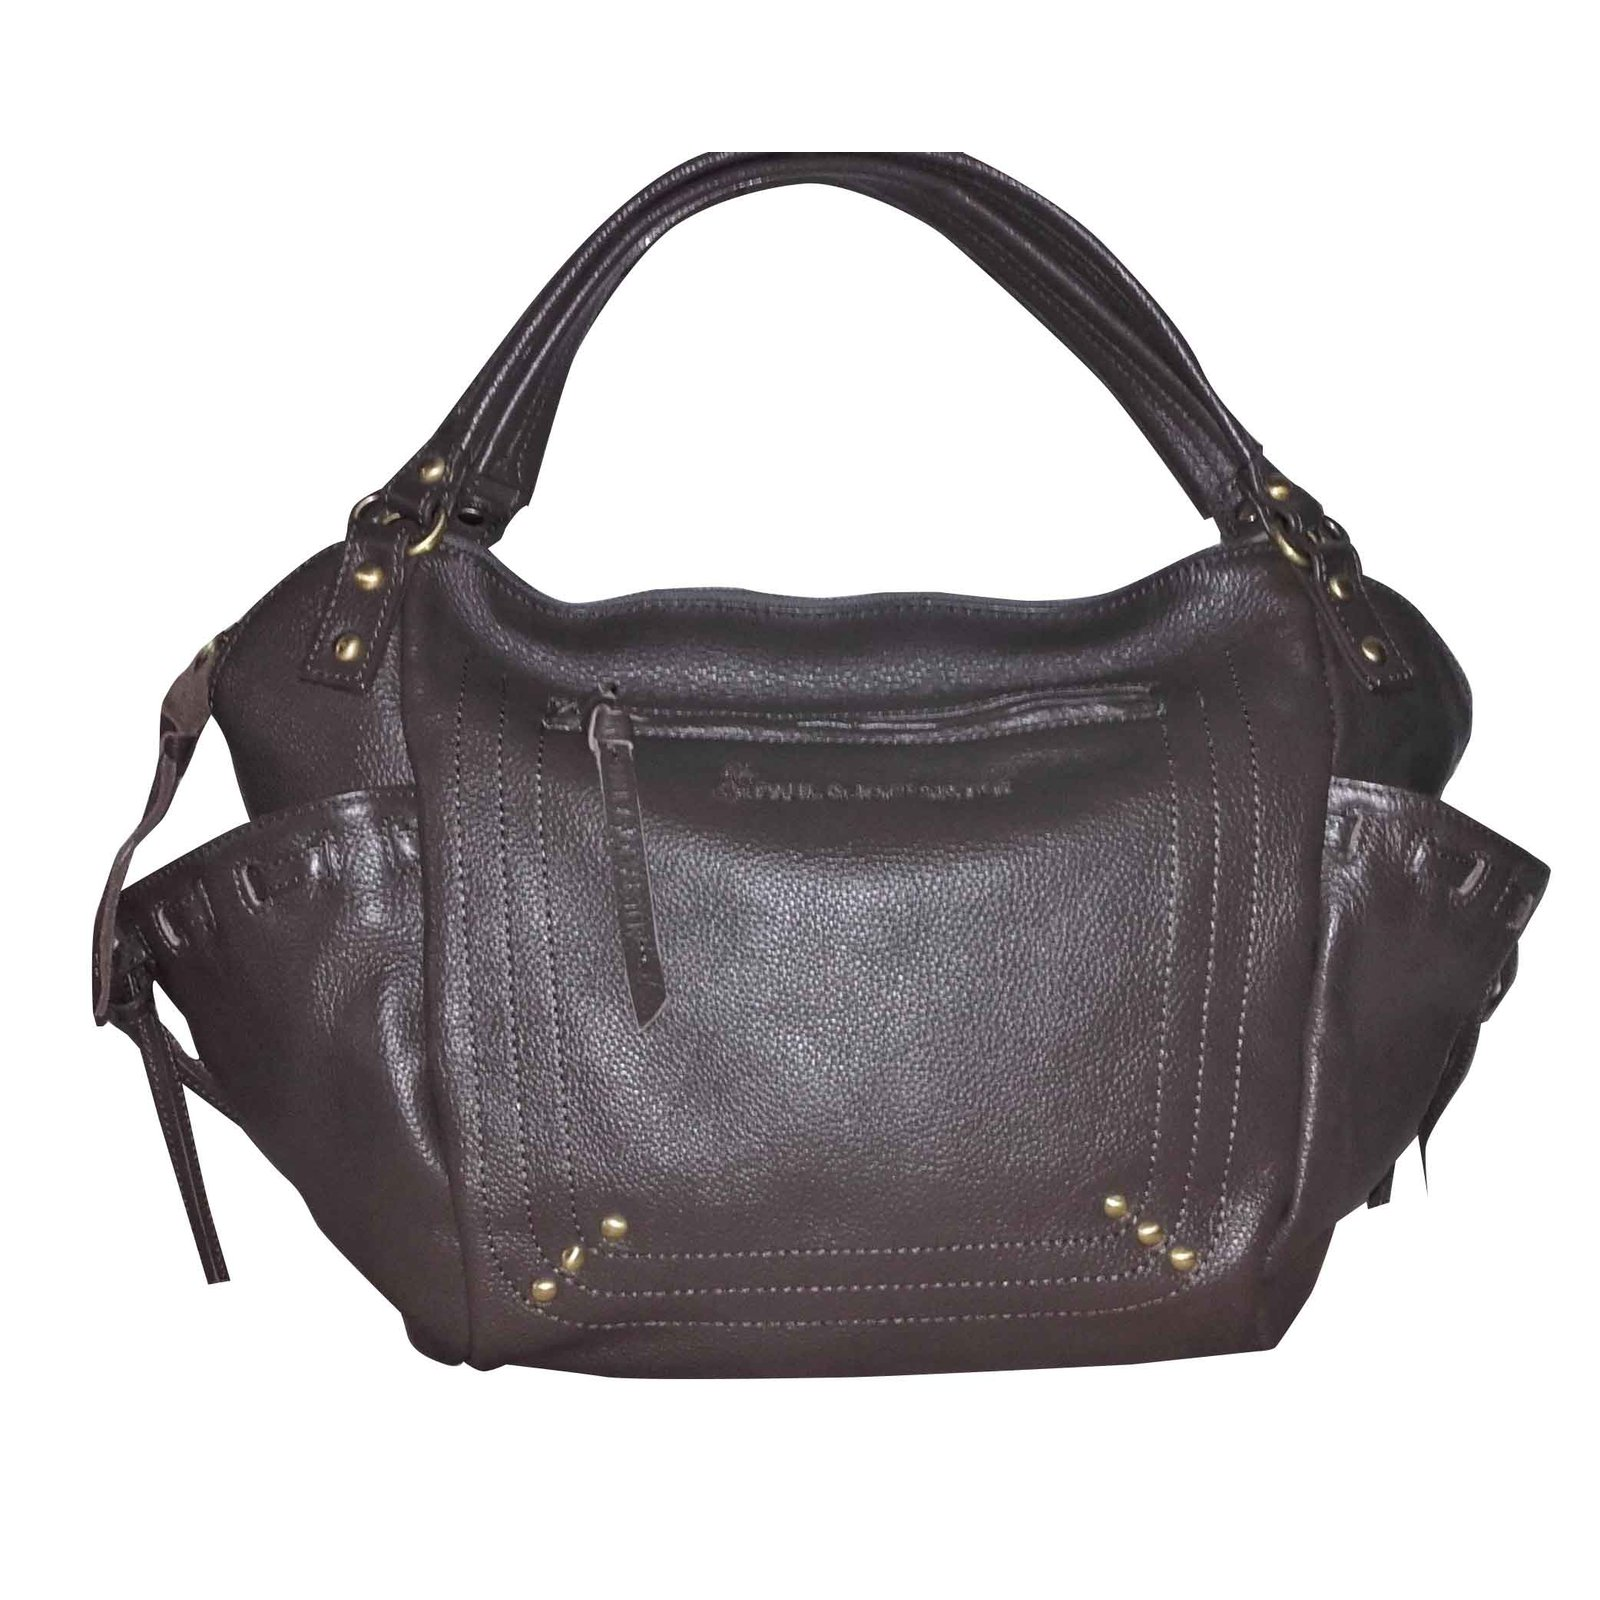 Paul Joe Sister Handbag Handbags Leather Brown Ref 28137